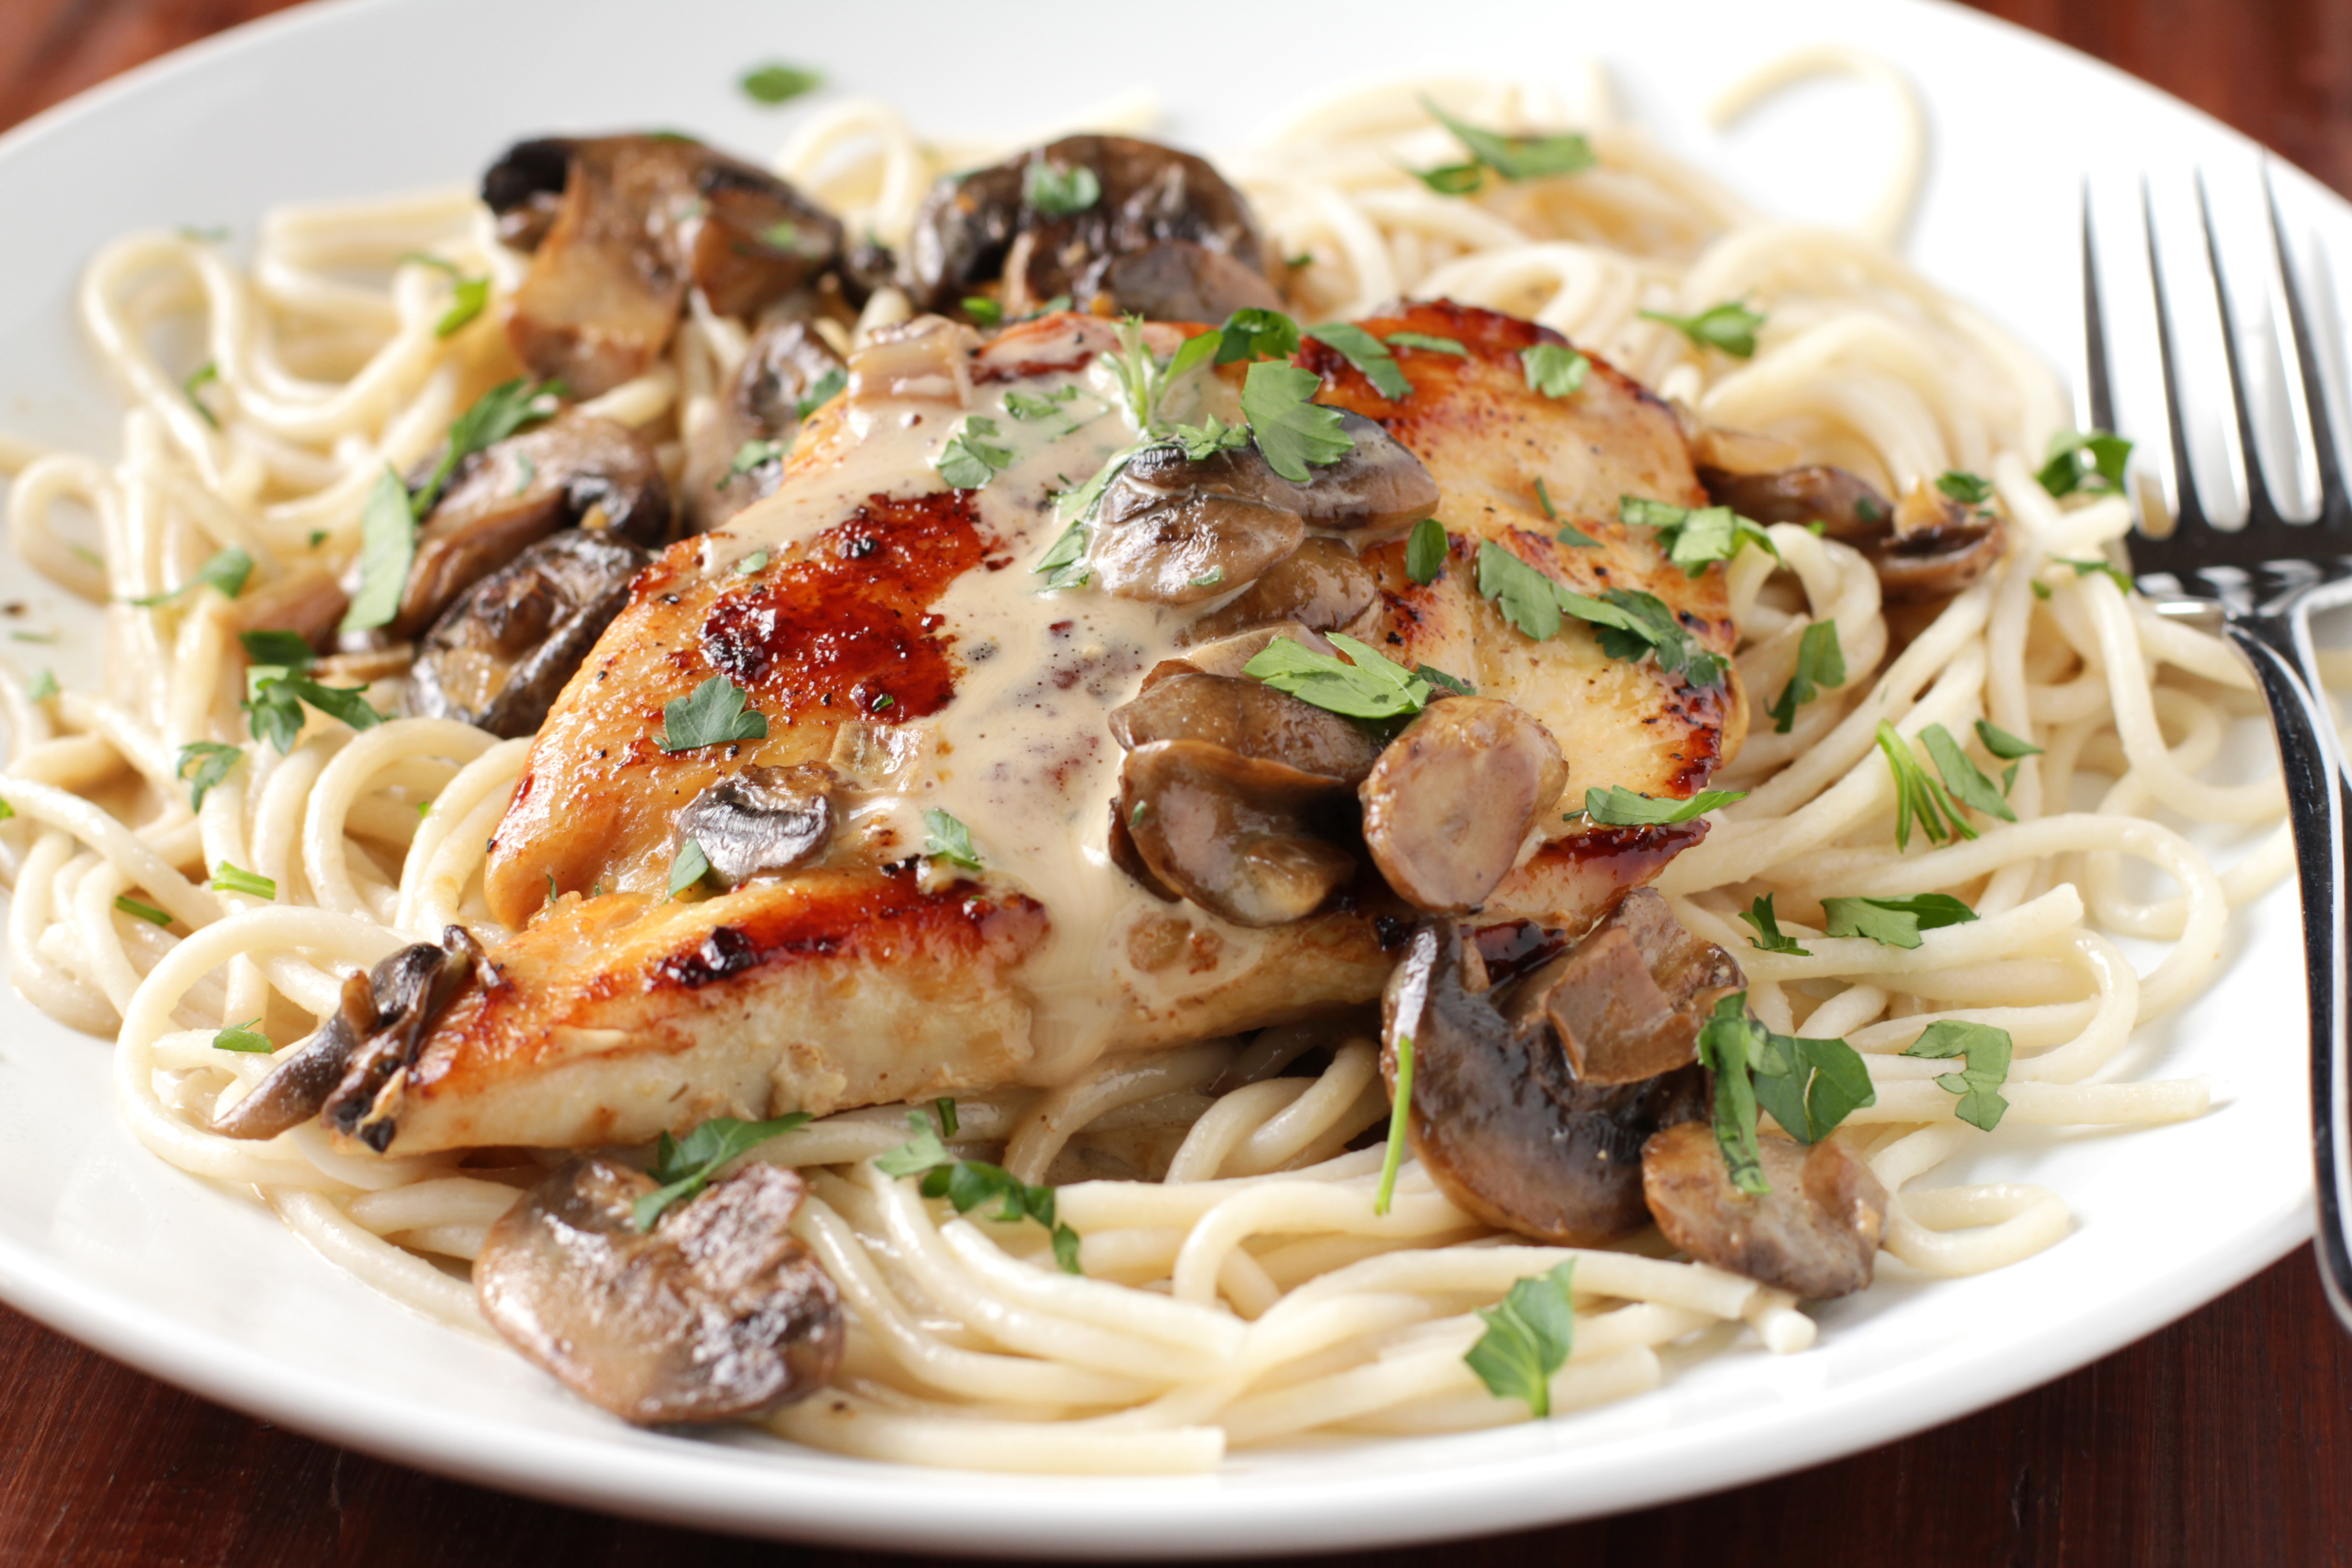 Food love recipes fast dinner recipes for chicken fast dinner recipes for chicken forumfinder Image collections